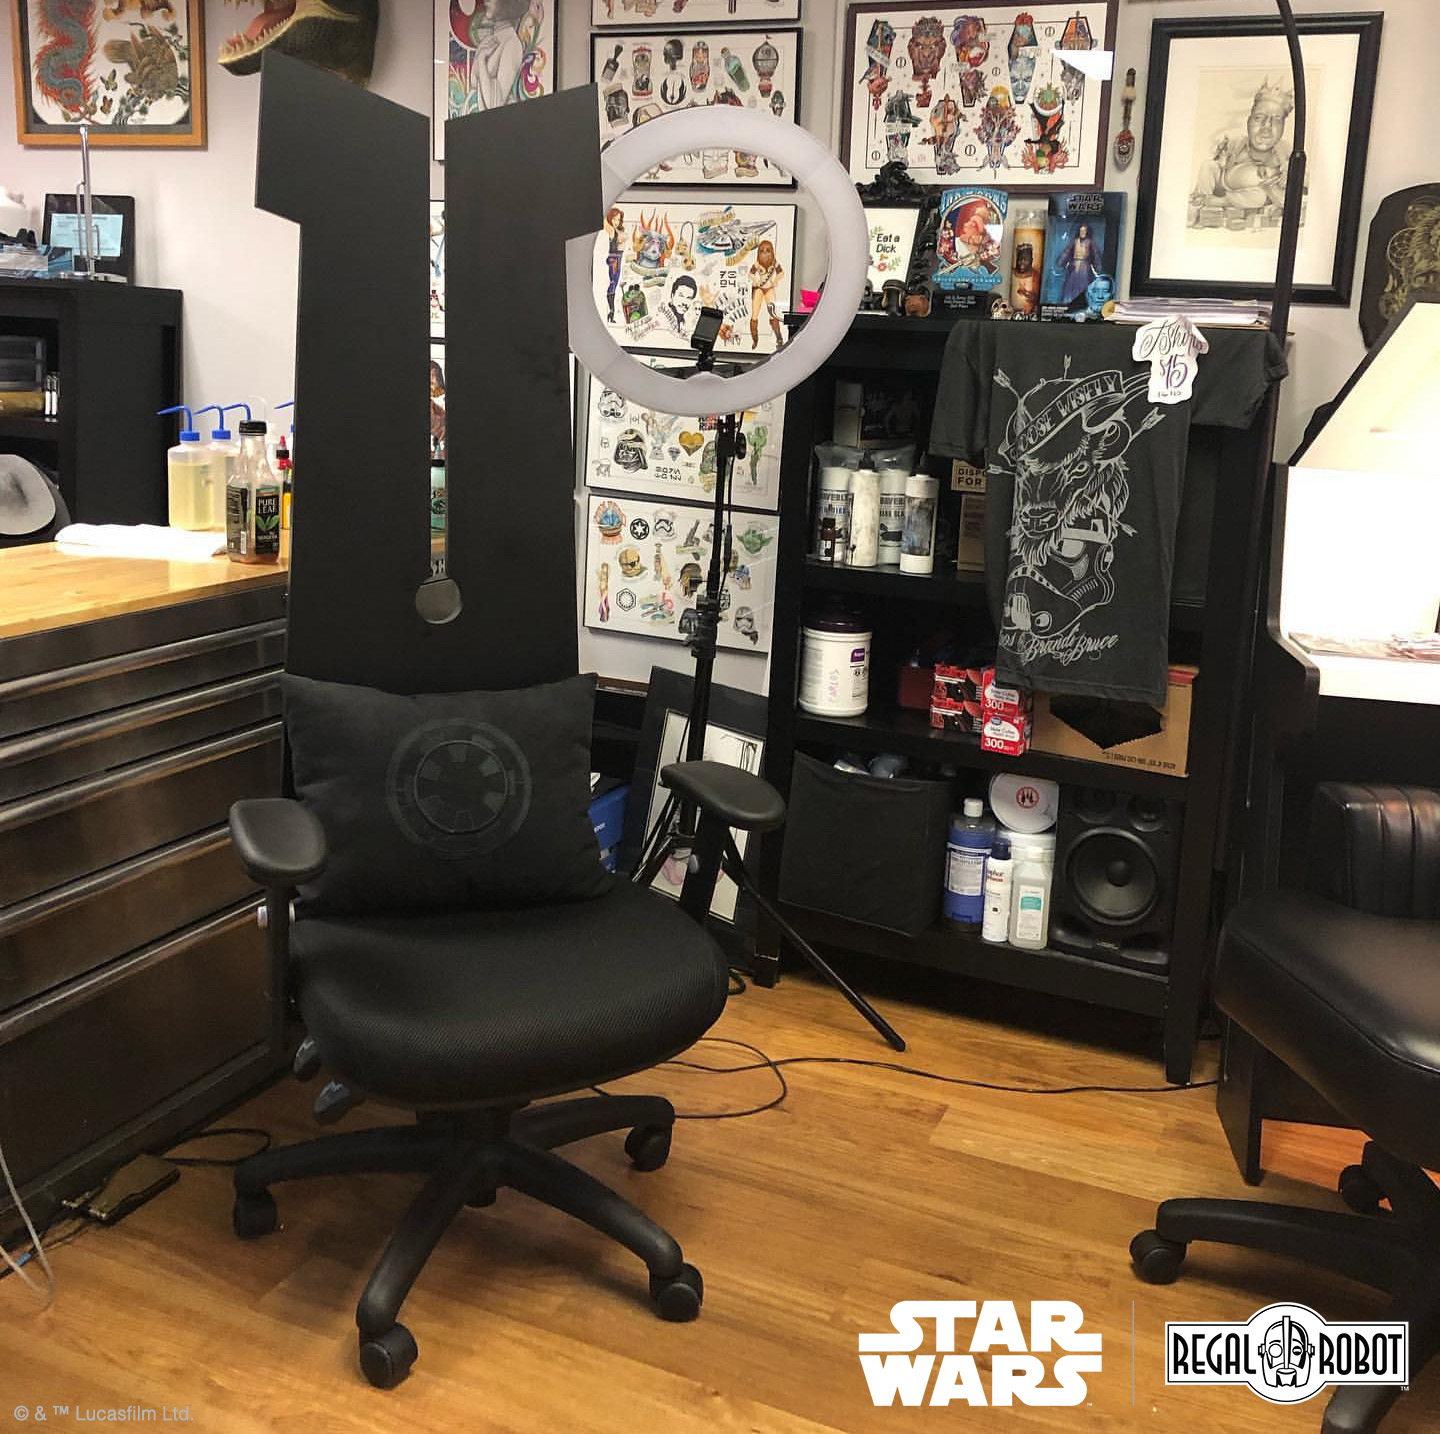 Grand Moff Tarkin's chair by Regal Robot